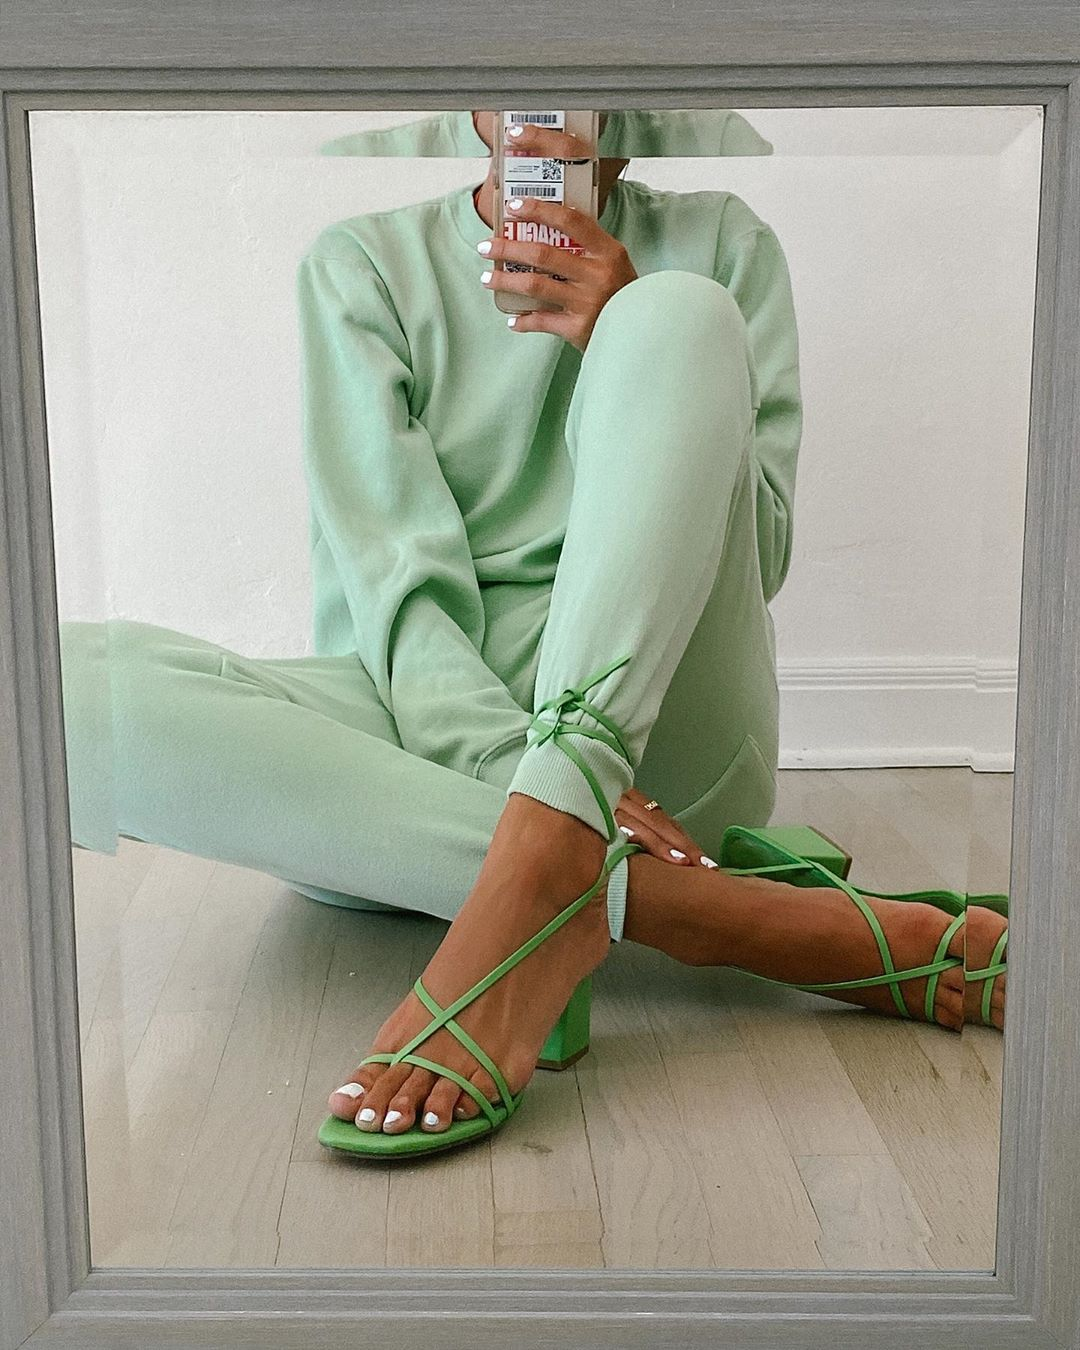 tezza-song-of-style-summer-sandals-instagram